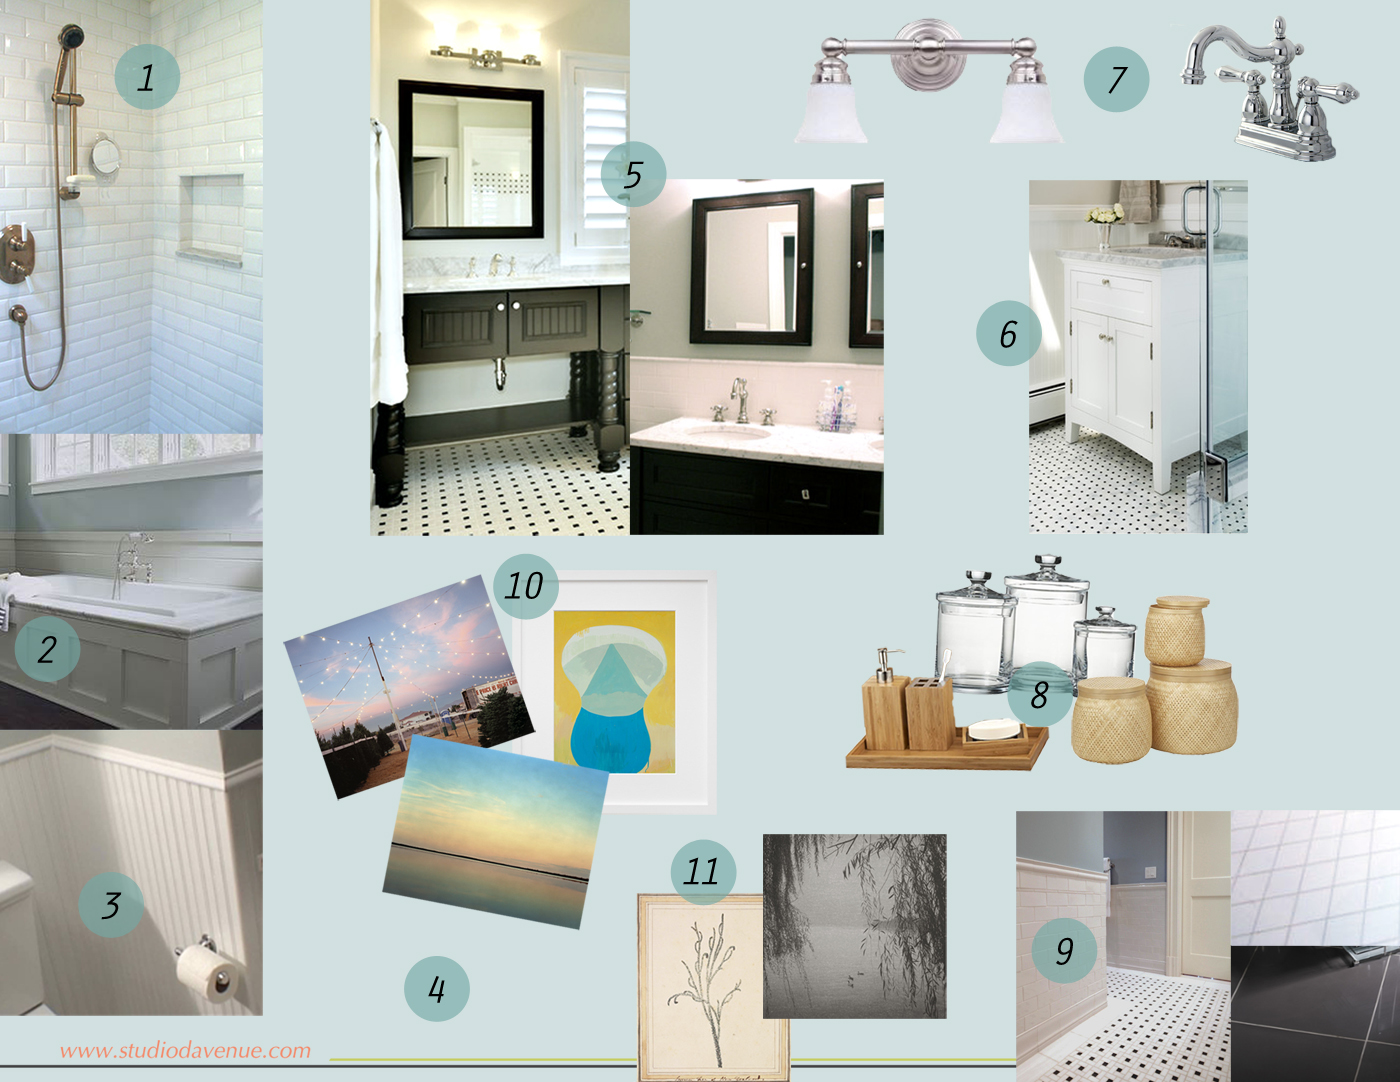 Bathroom Design Board mood board: bathroom update design - studio davenue